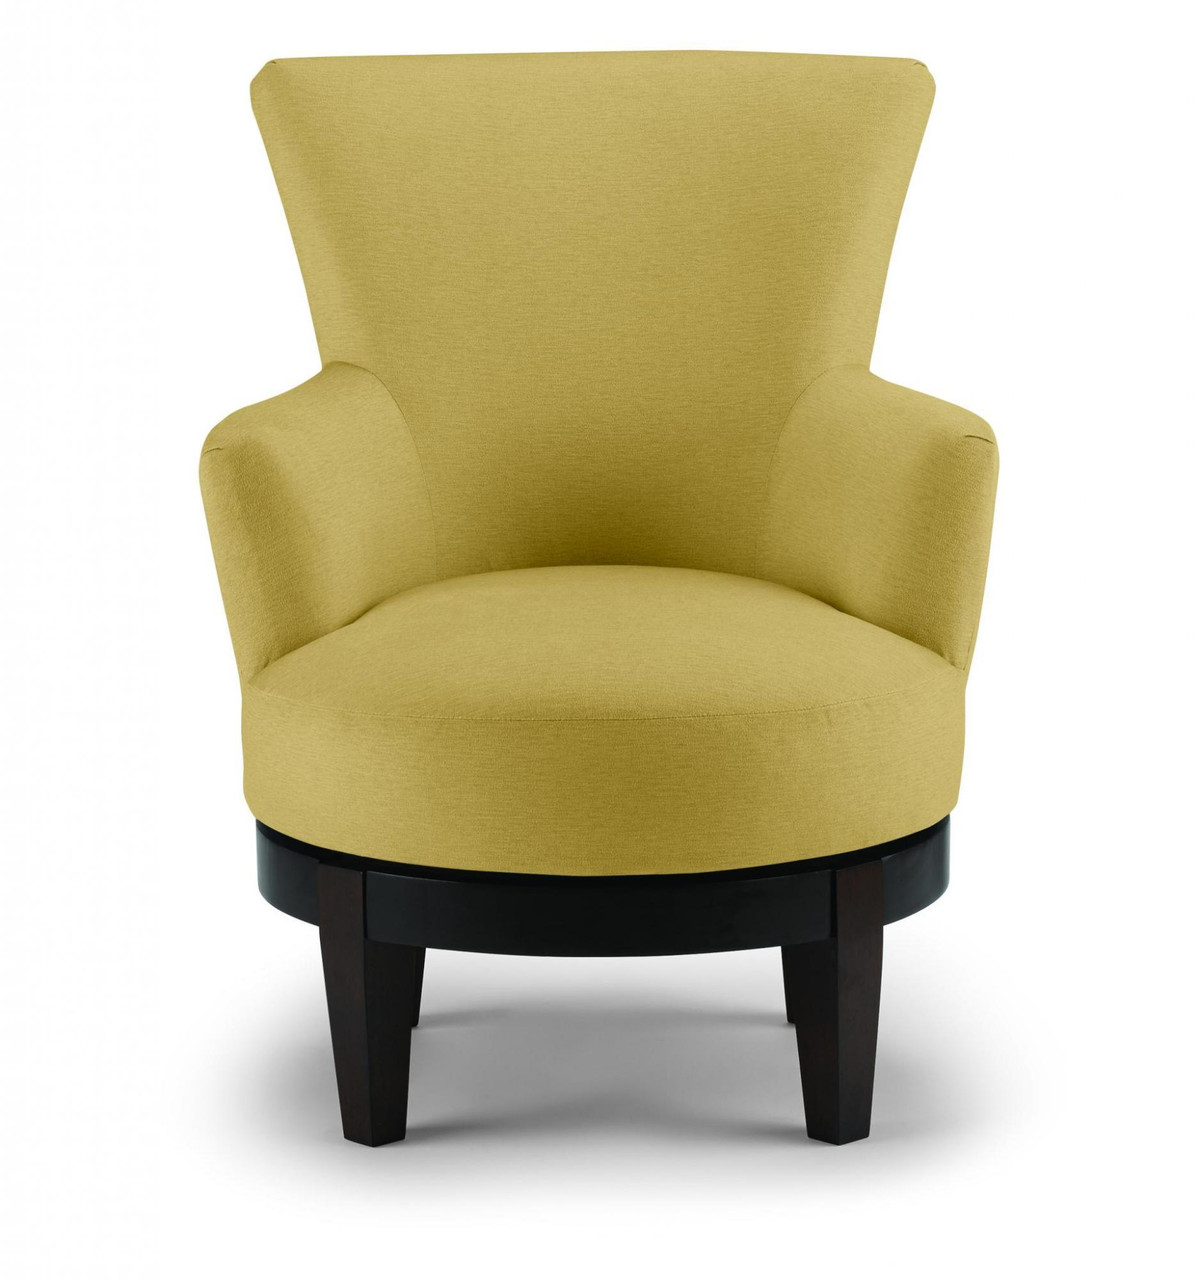 Picture of: The Justine Swivel Accent Chair Available At Orange Park Furniture Serving Orange Park Fl And Surrounding Areas